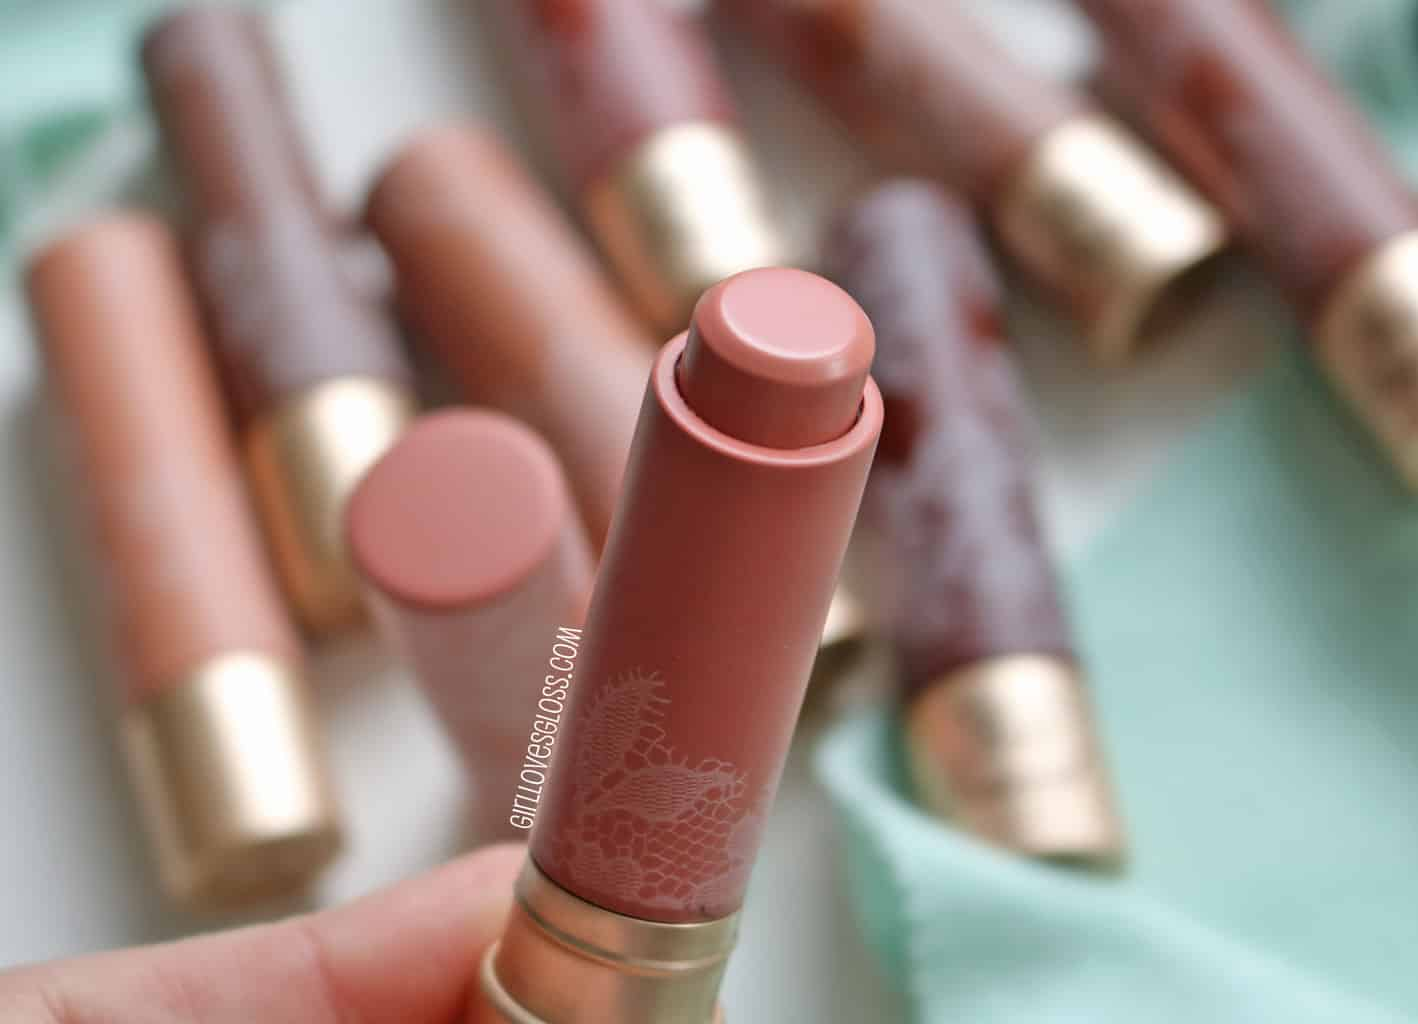 Too Faced Natural Nudes Lipstick Swatches and Review